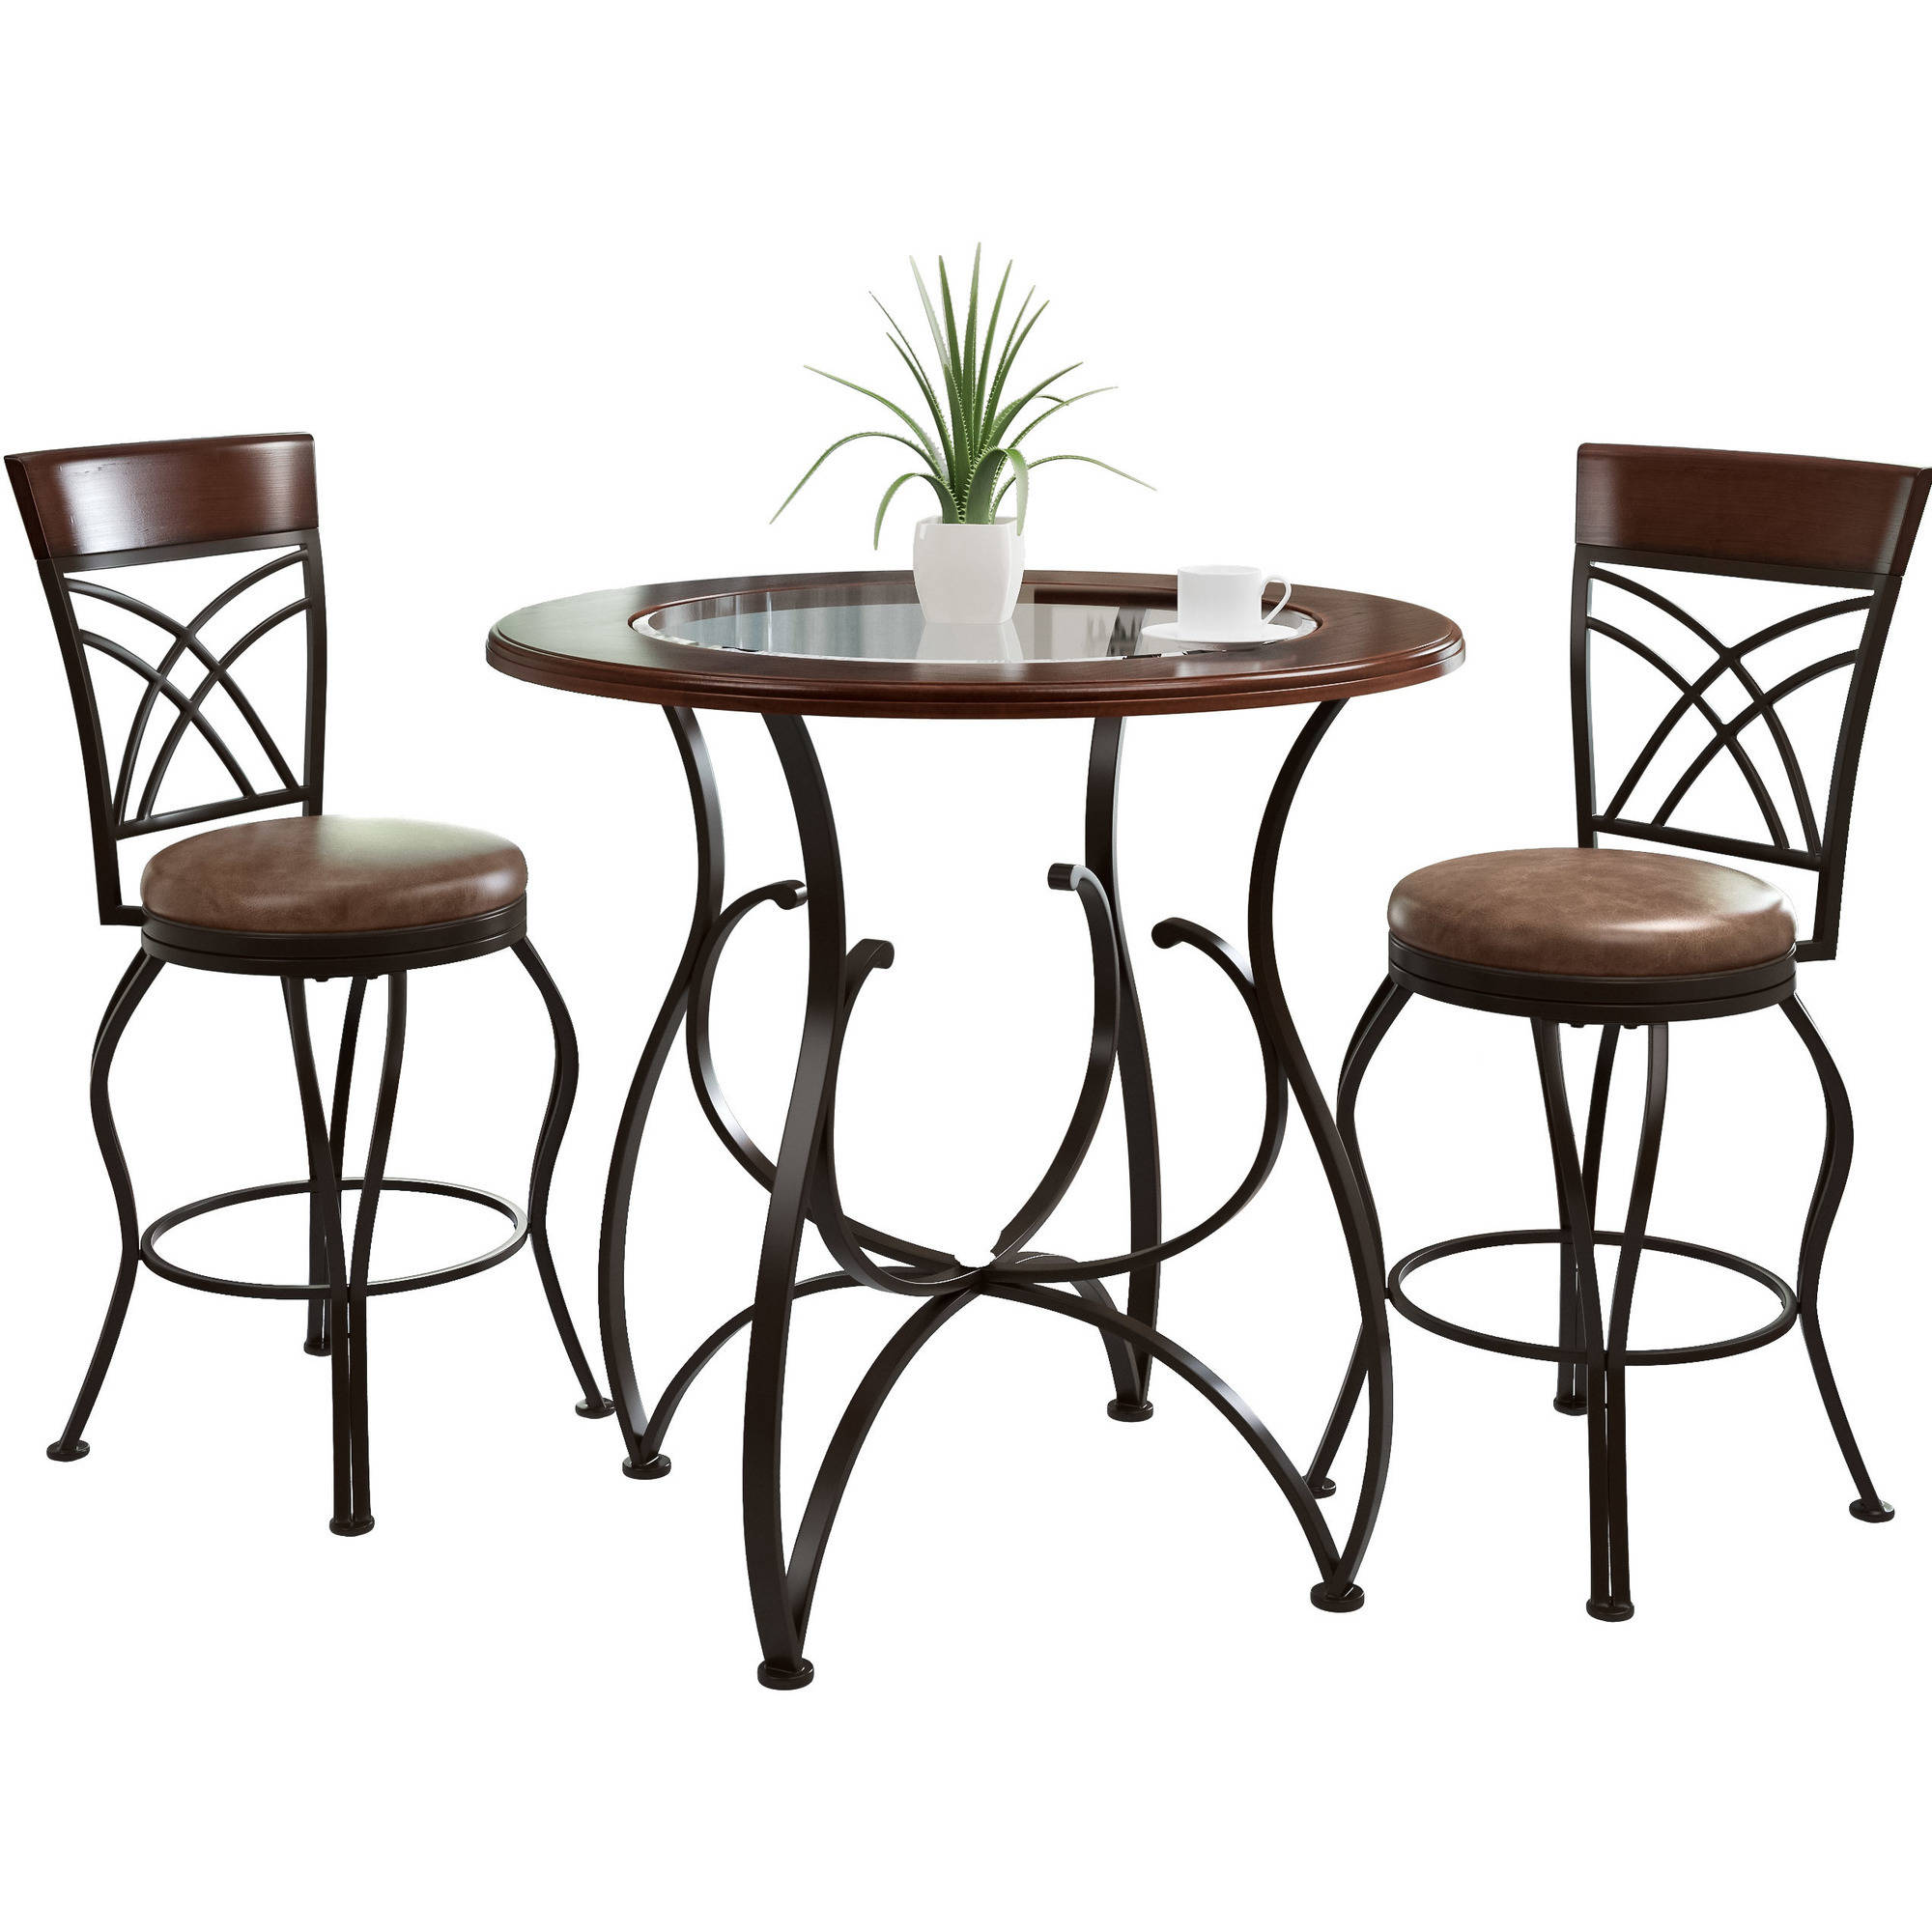 CorLiving Jericho 3 Piece Counter Height Rustic Brown Barstool And Bistro  Table Set